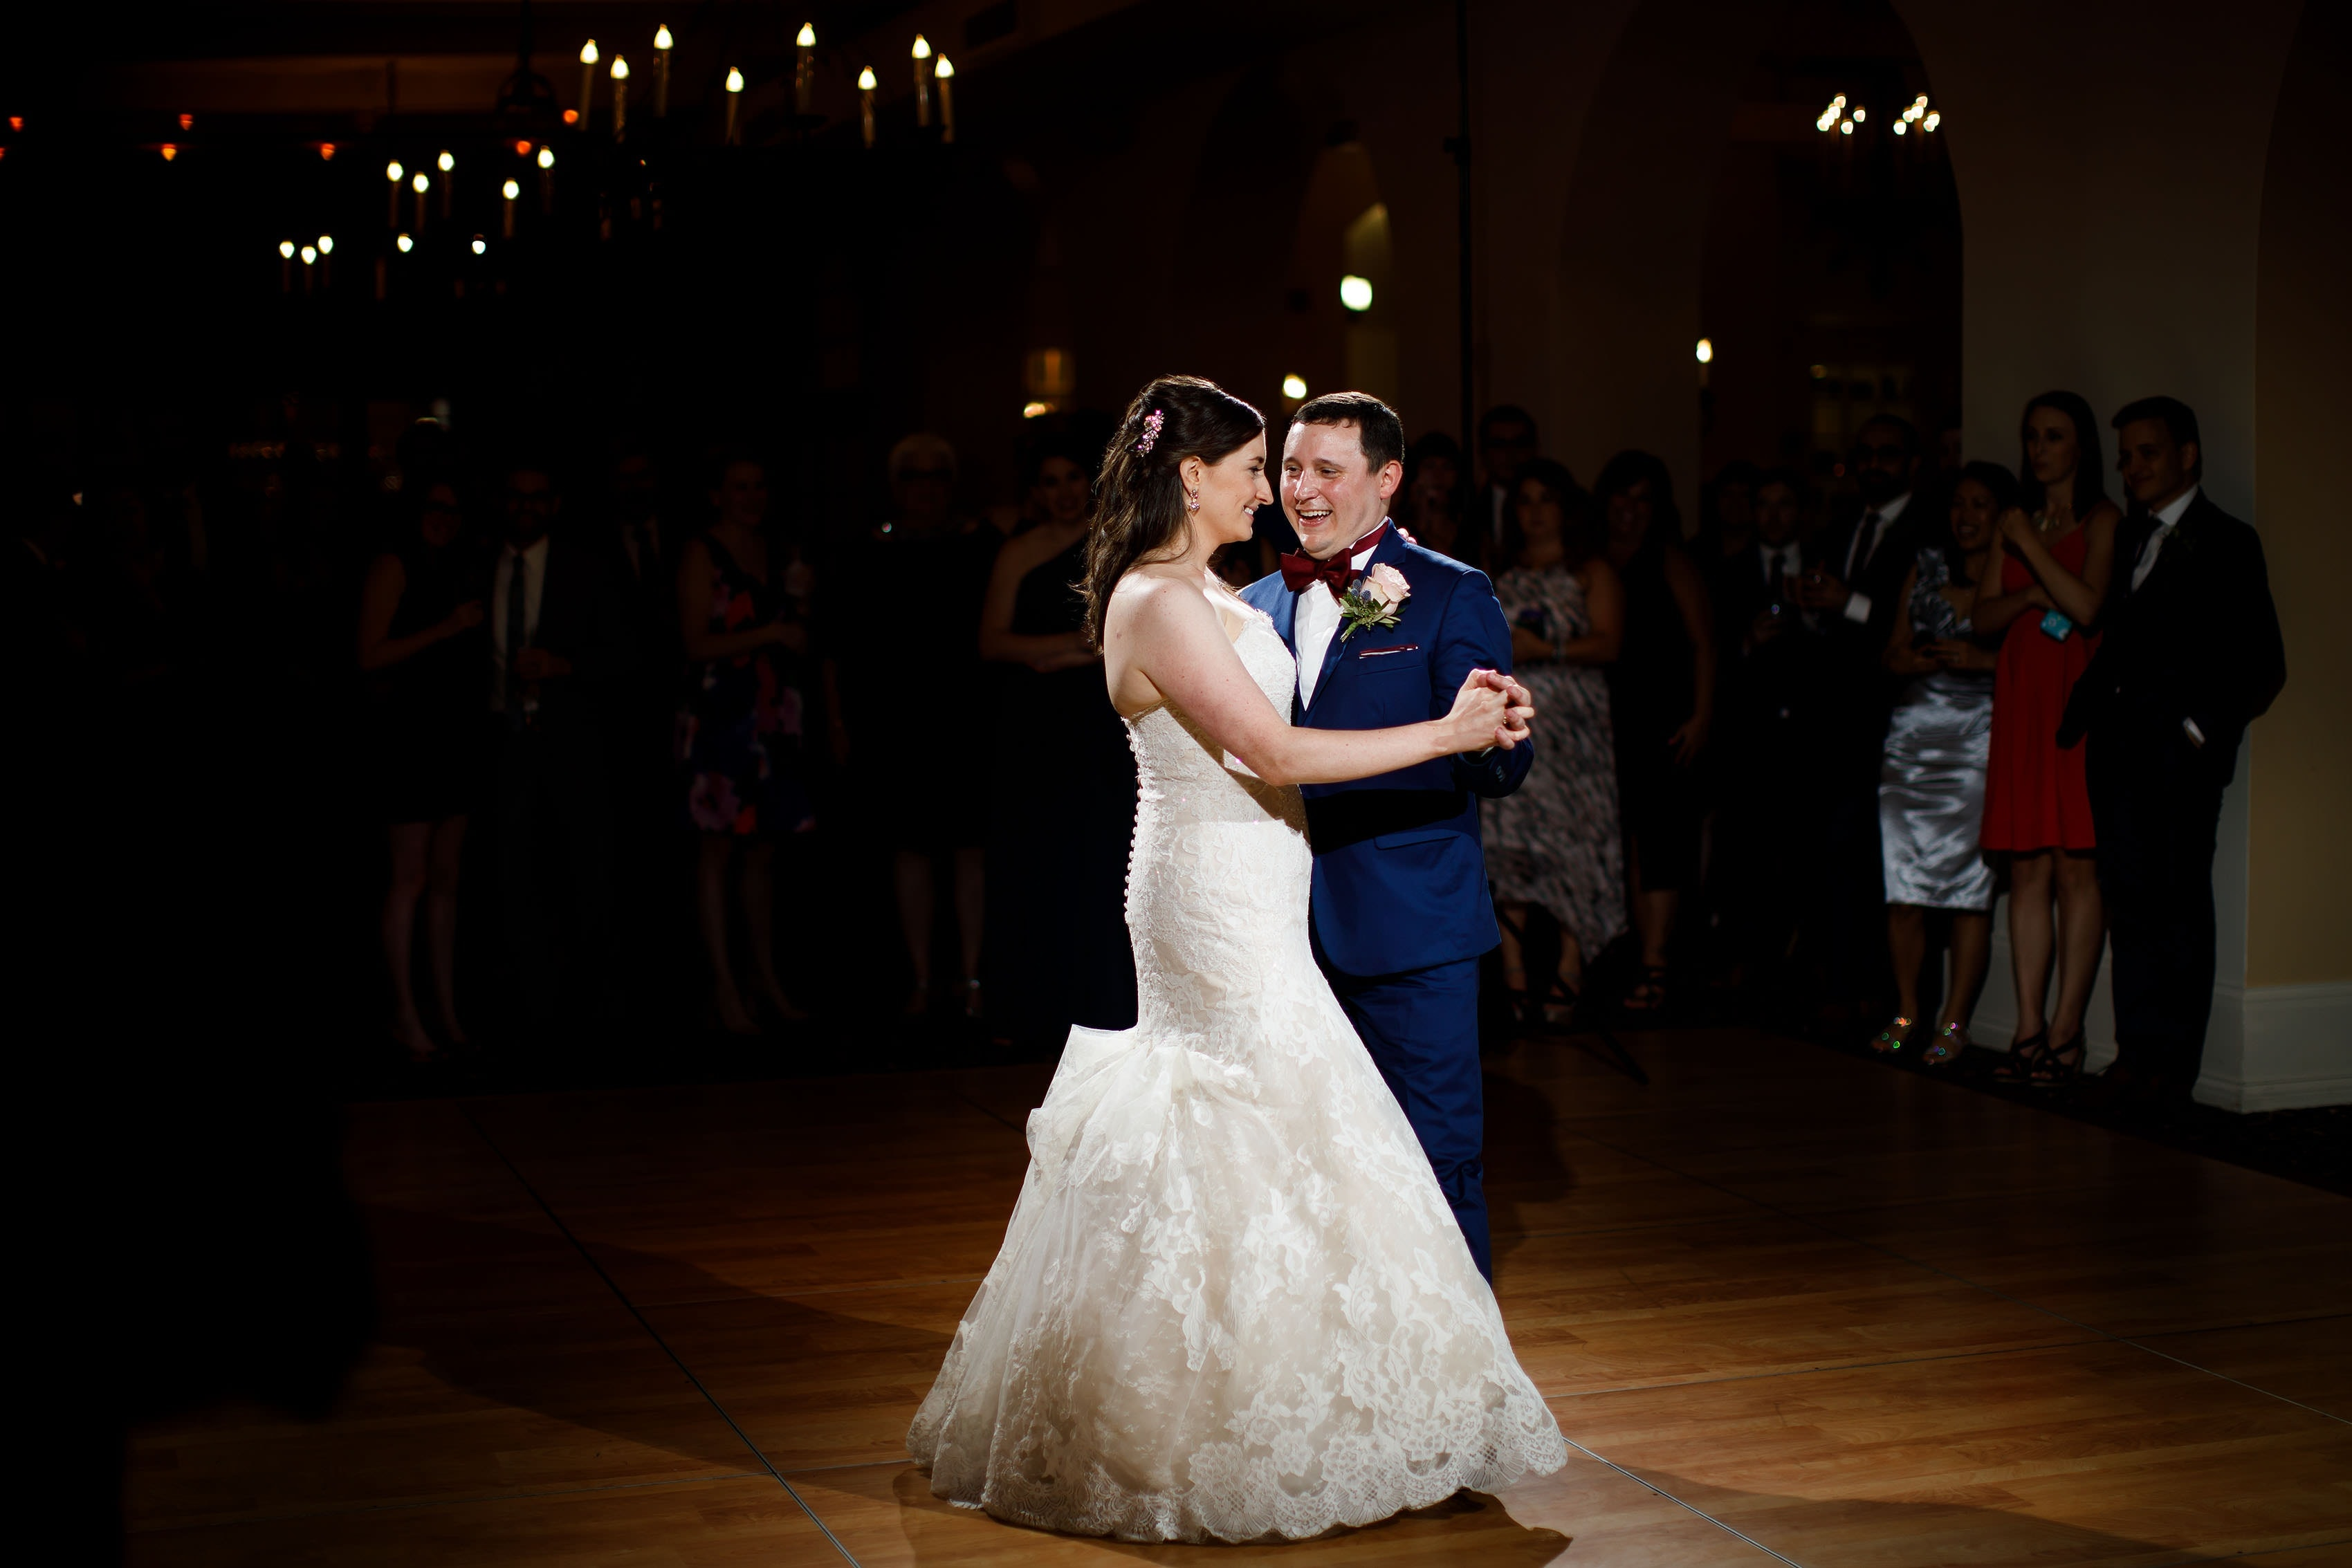 A first dance between Katie and Joel during their Ravisloe Country Club wedding